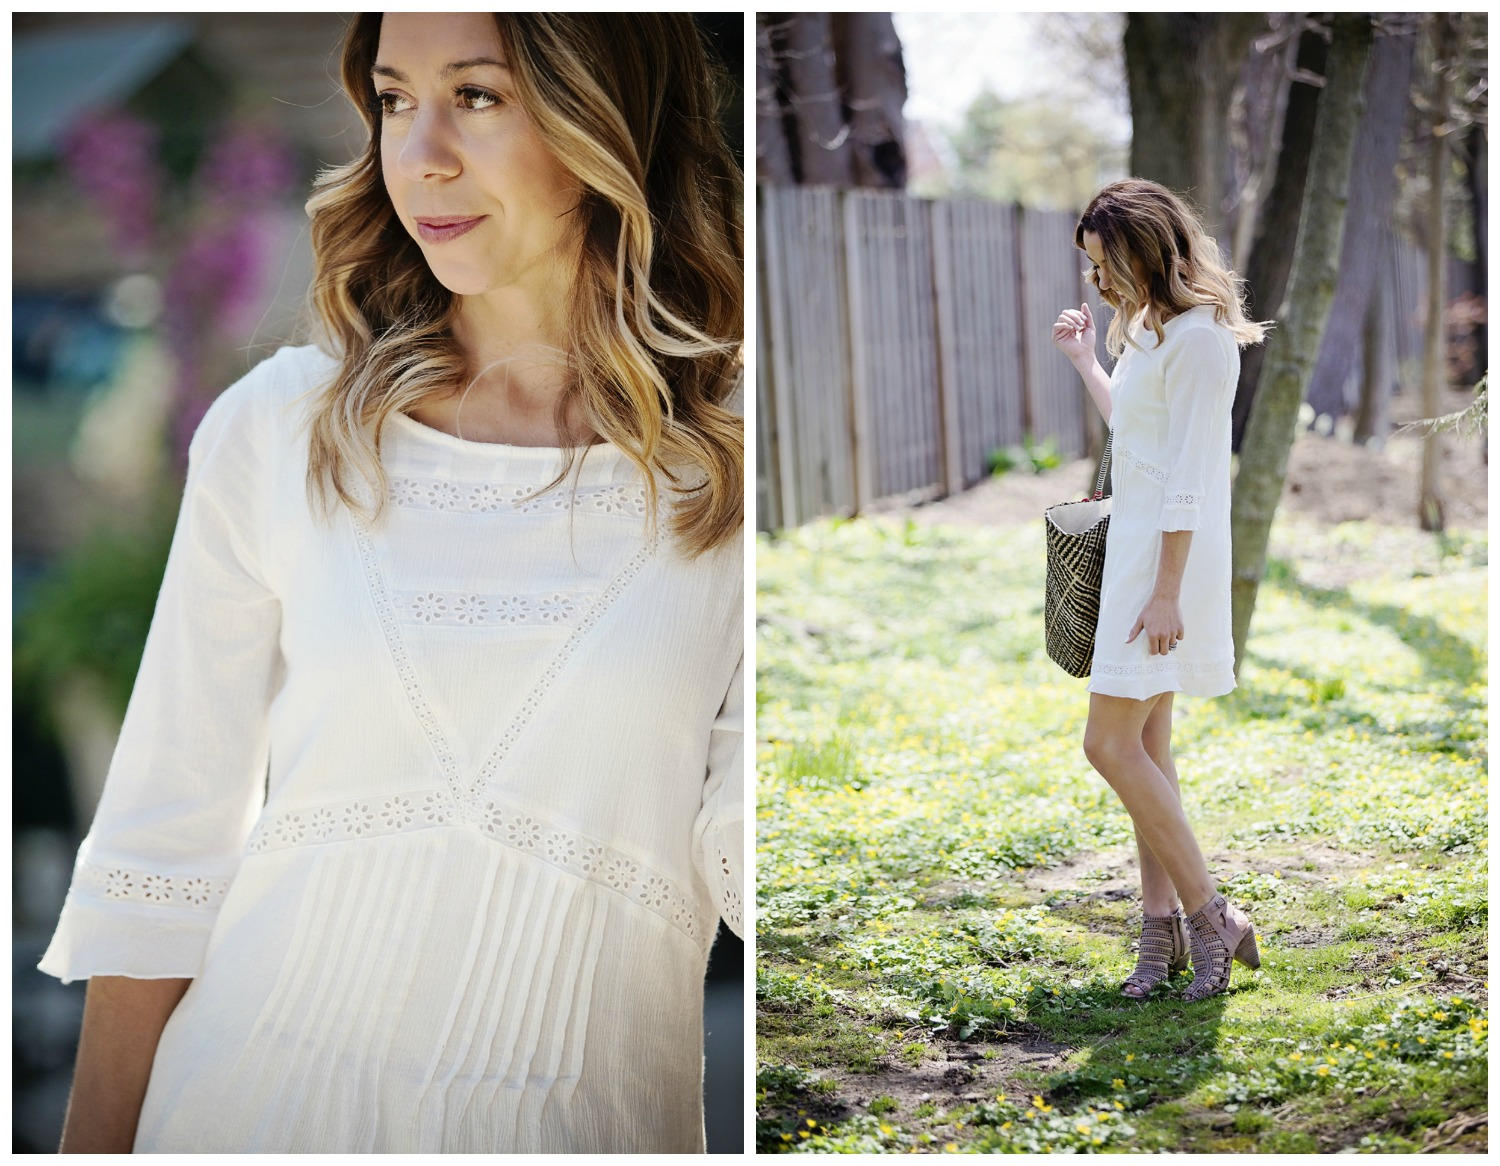 The Motherchic wearing white dress by sanctuary